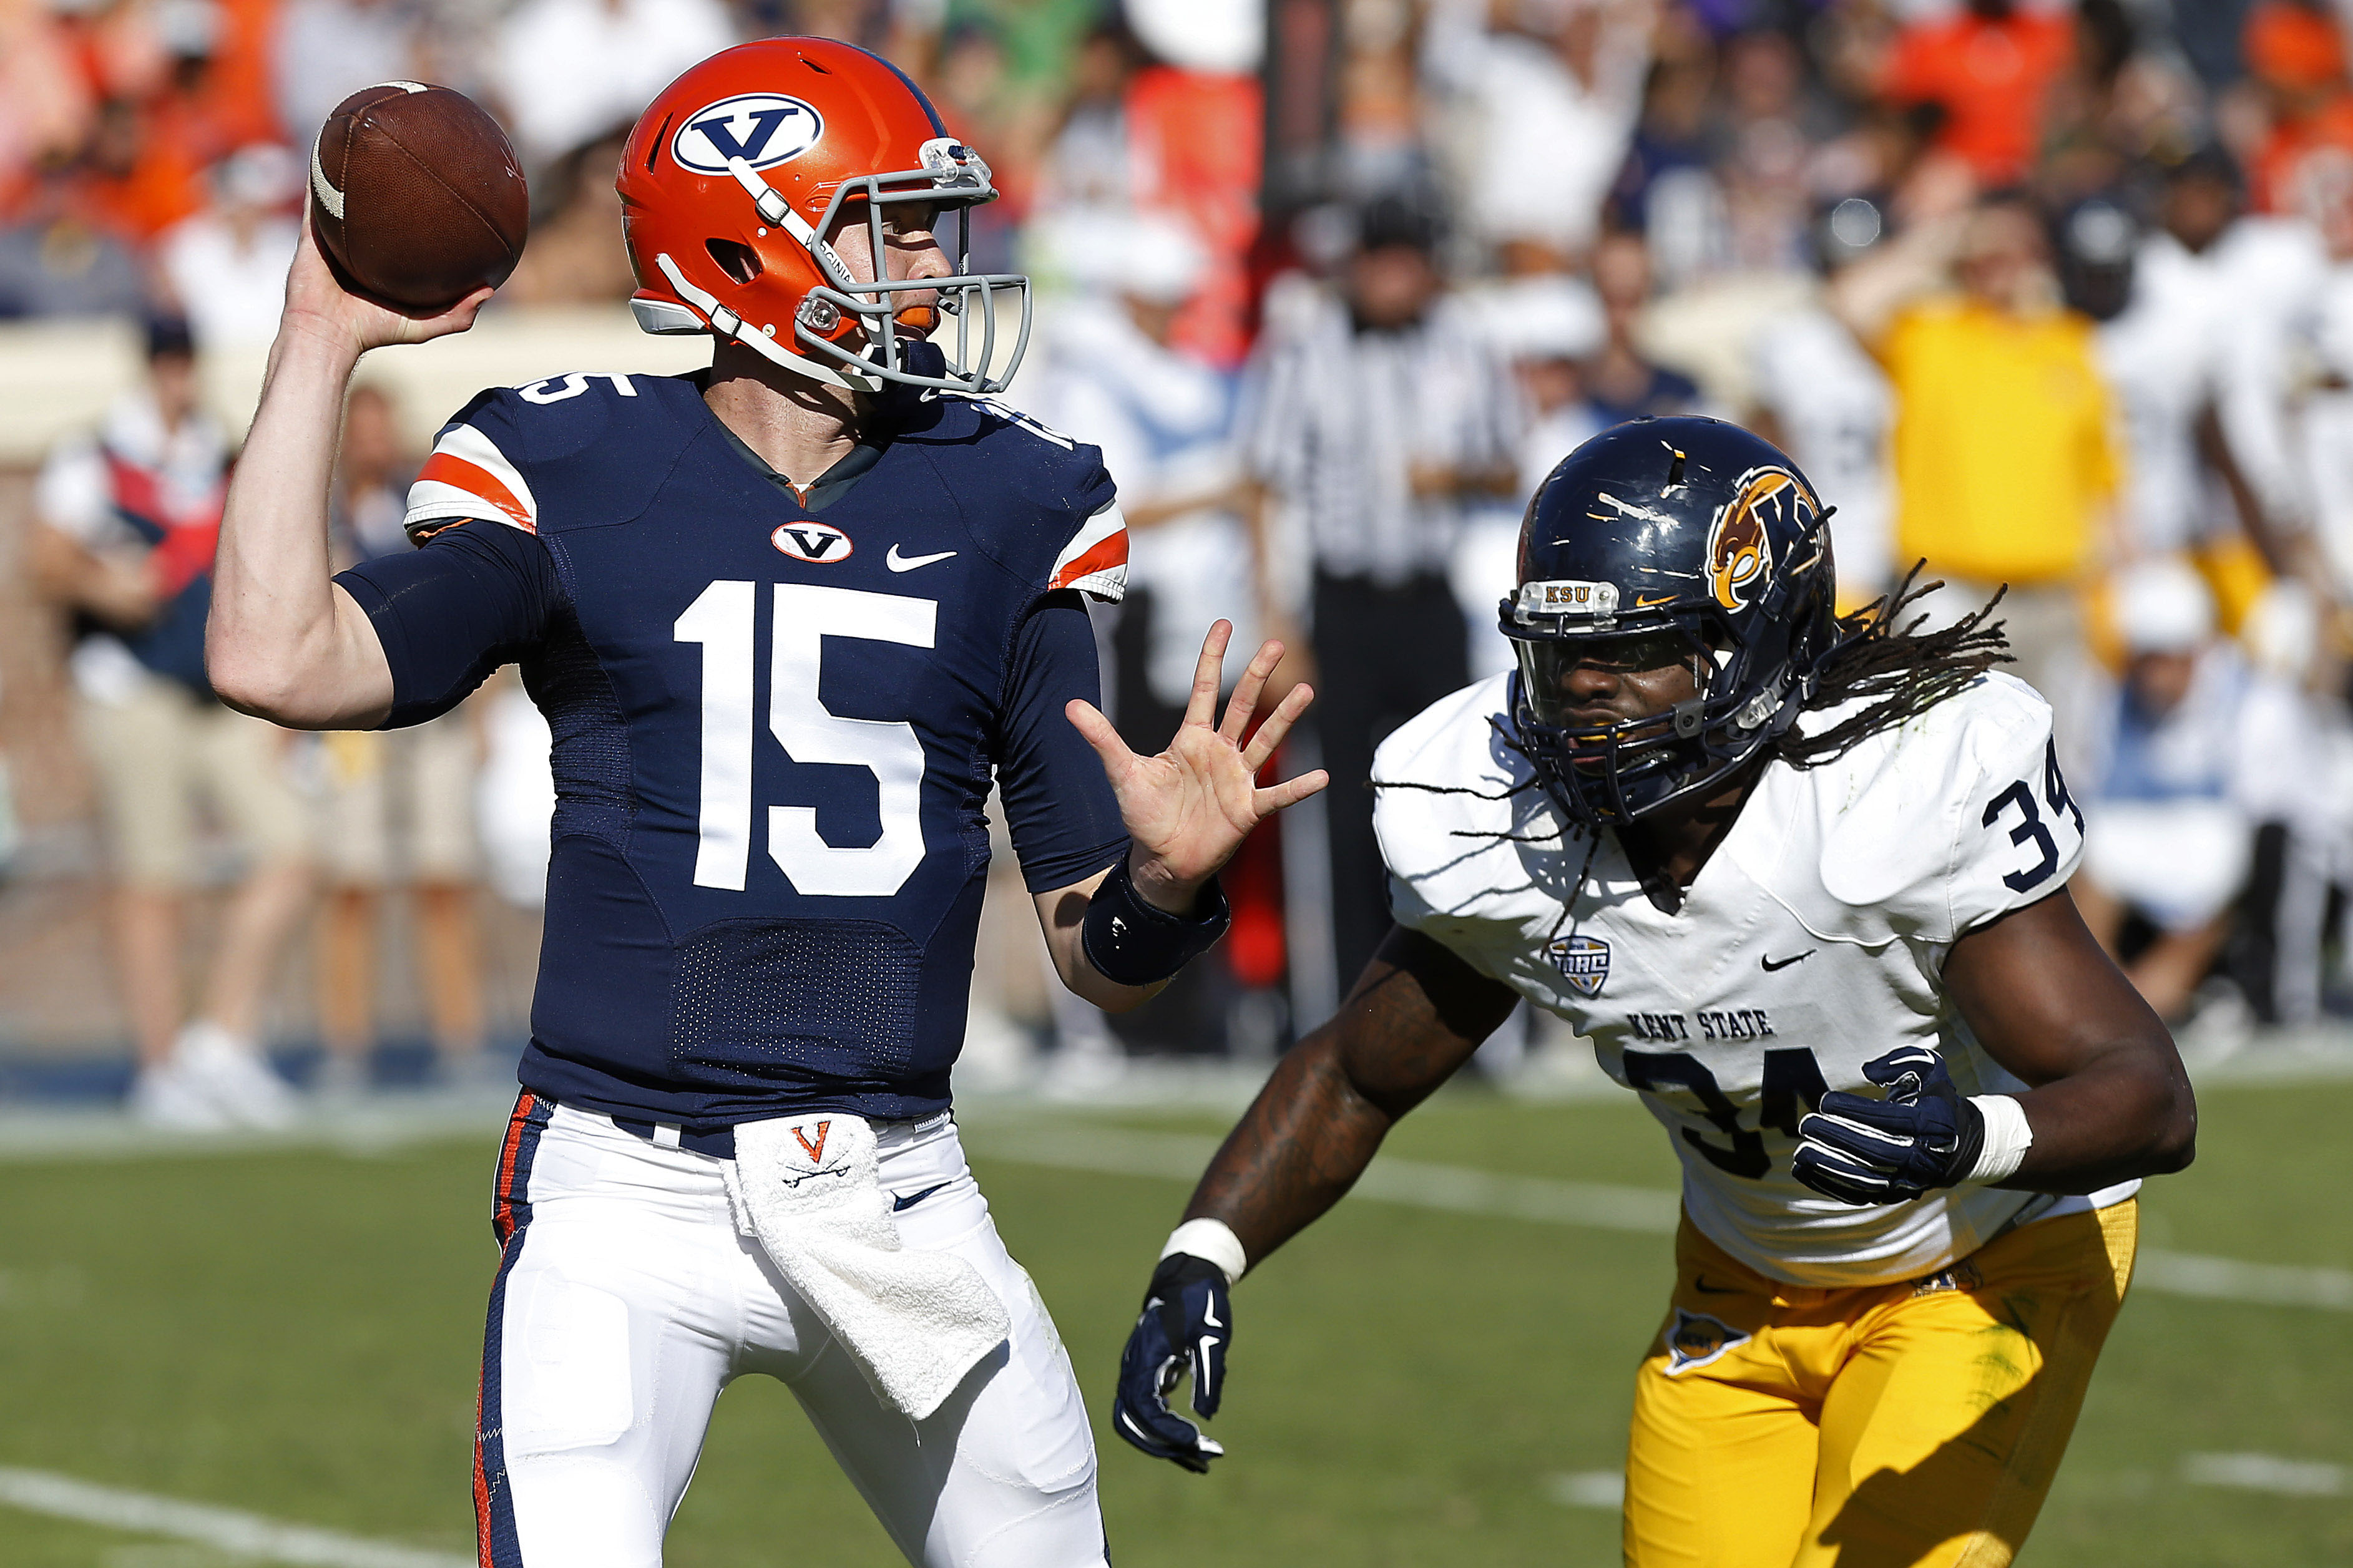 Virginia Cavaliers quarterback Matt Johns (15) throws the ball as Kent State Golden Flashes defensive lineman Richard Gray (34) chases in the first quarter at Scott Stadium. (Geoff Burke-USA TODAY Sports)